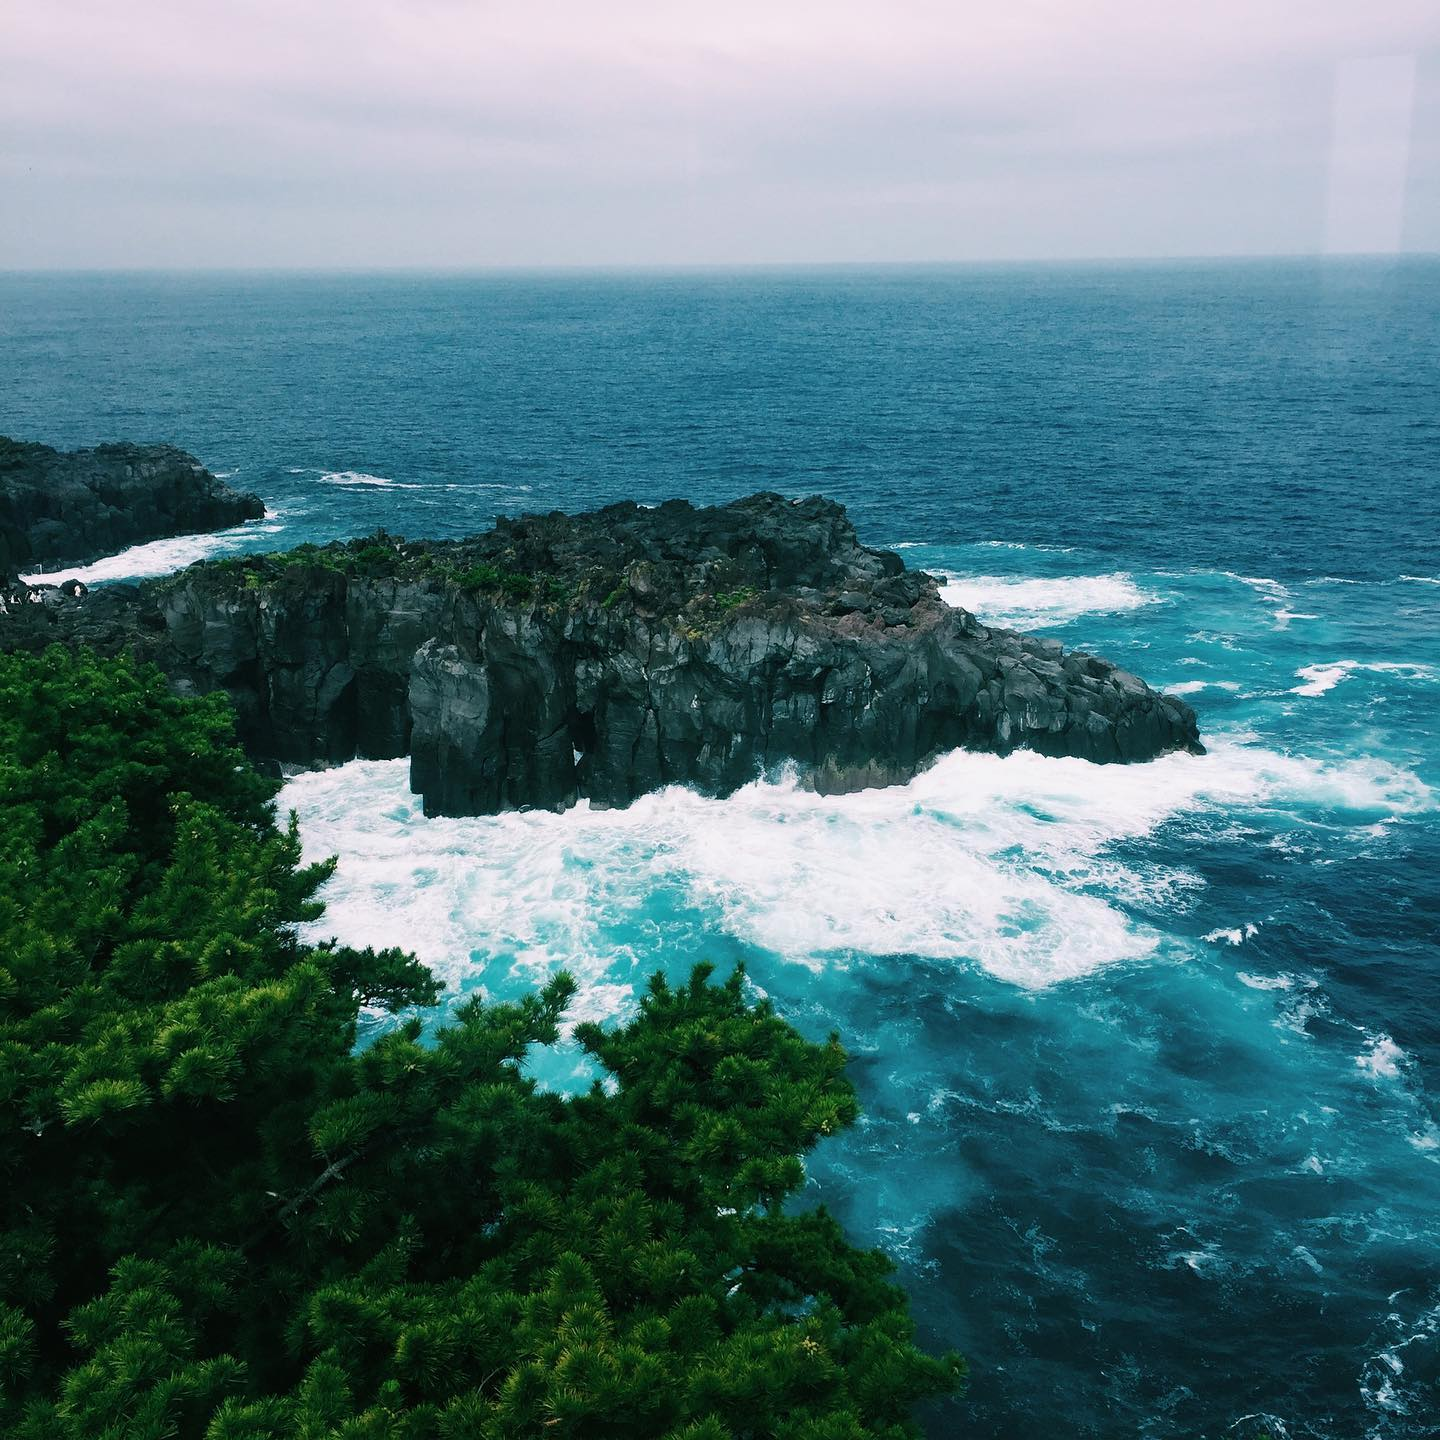 _ Here's today's #shootinjapanfrom AOI Global at the Jogasaki Coast in the Izu peninsula.   The Jogasaki Coast, is a rugged stretch of dark volcanic cliff coastline on the eastern shore of the Izu Peninsula, southwest of Tokyo. Walking along the trails in the area, you will be able to see dynamic  views of cliffs, small islands, and waterfalls.   #aoiglobal #filmmakersworld #shootinglocation #filmmakinglife #weeklyinspiration� #remoteshooting